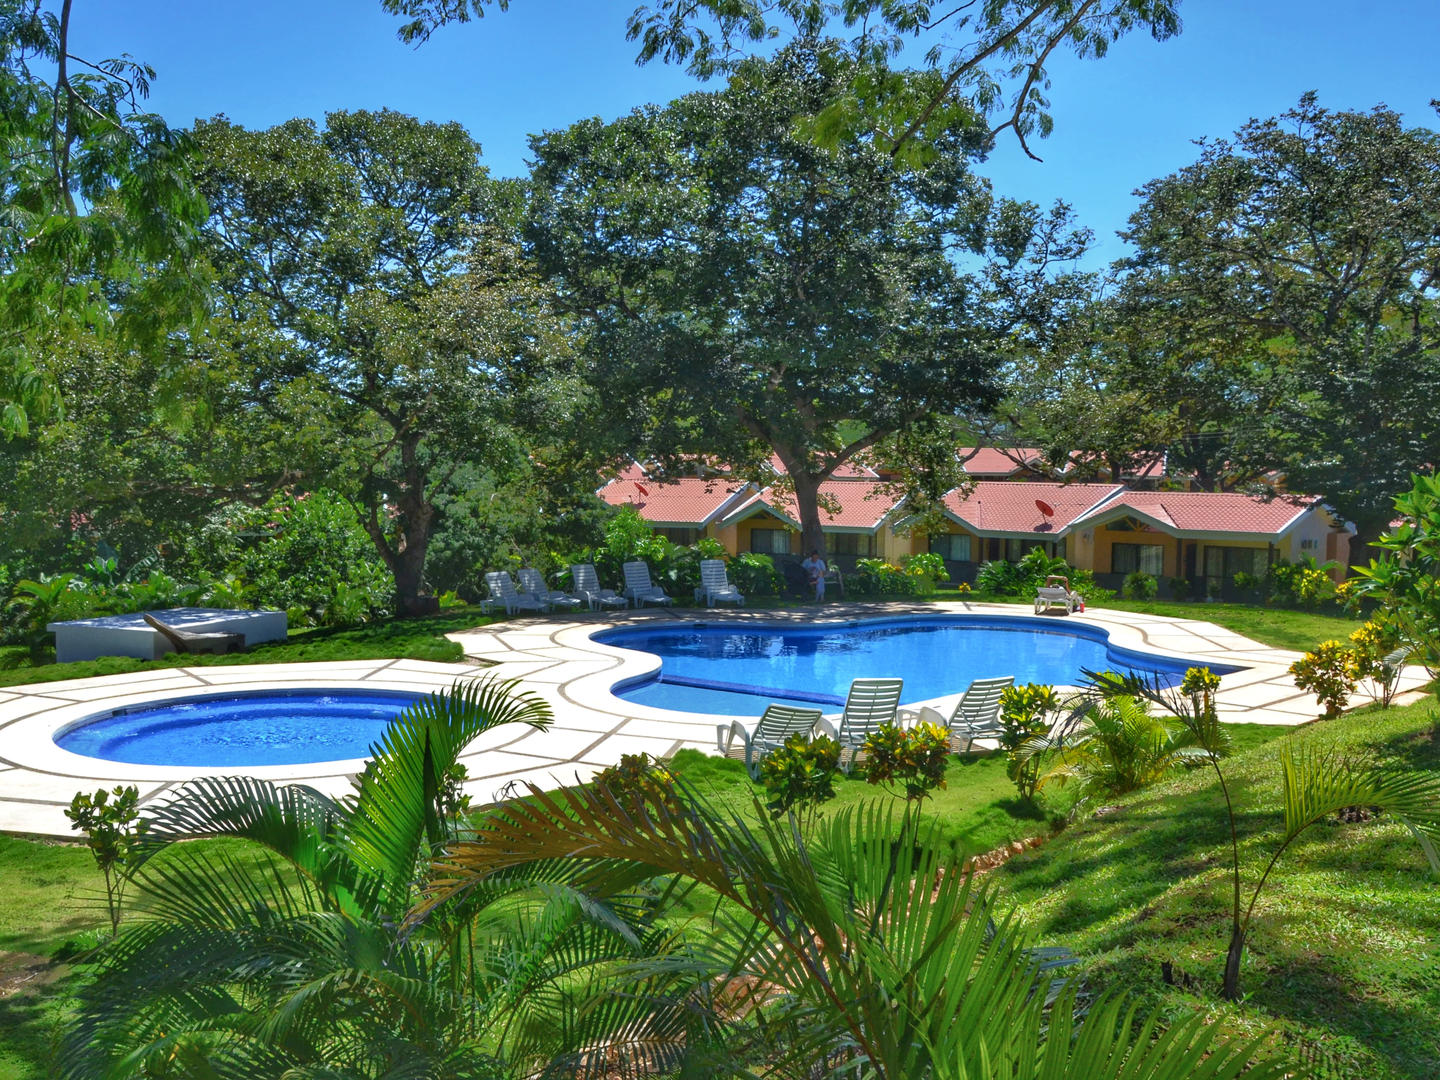 The villas at Playa Lagarto